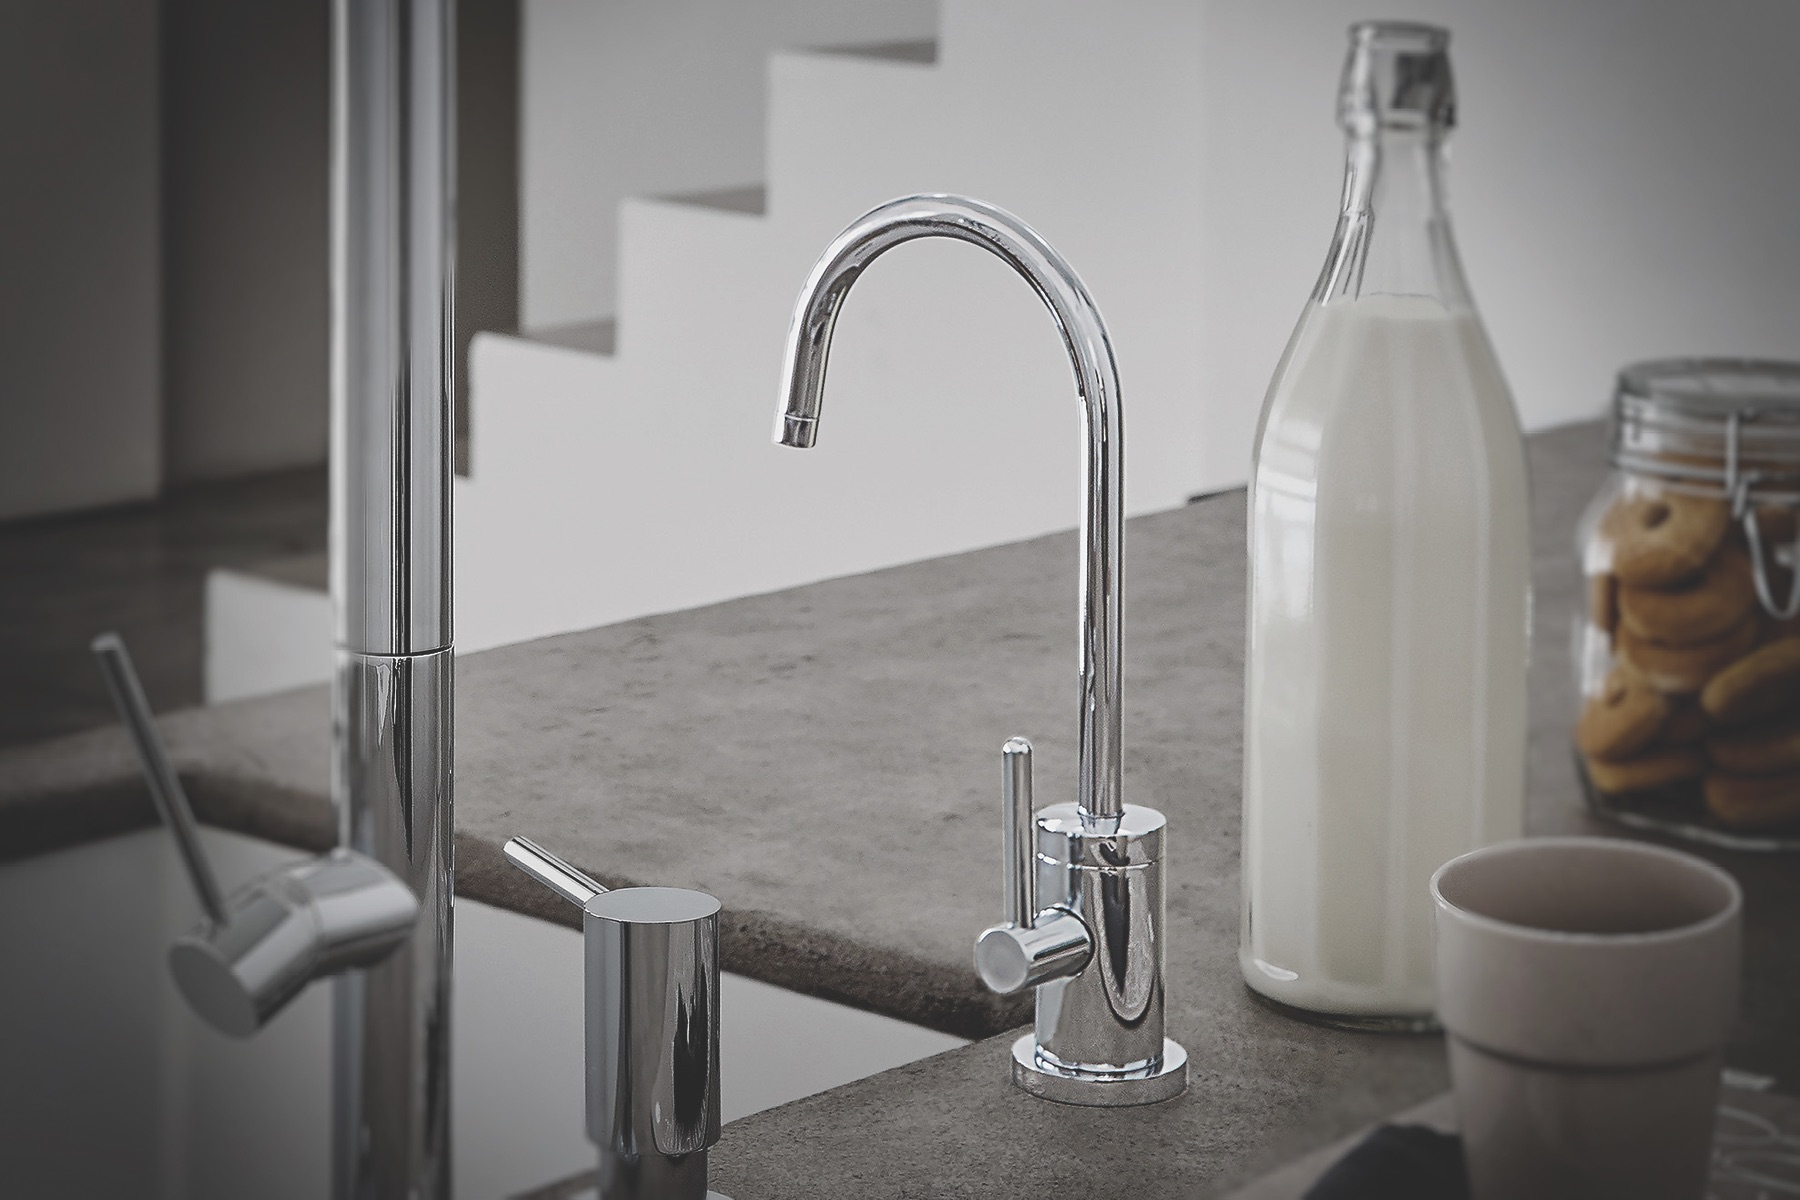 California Faucets Adds Two In One Hot And Cold Water Dispenser Residential Products Online